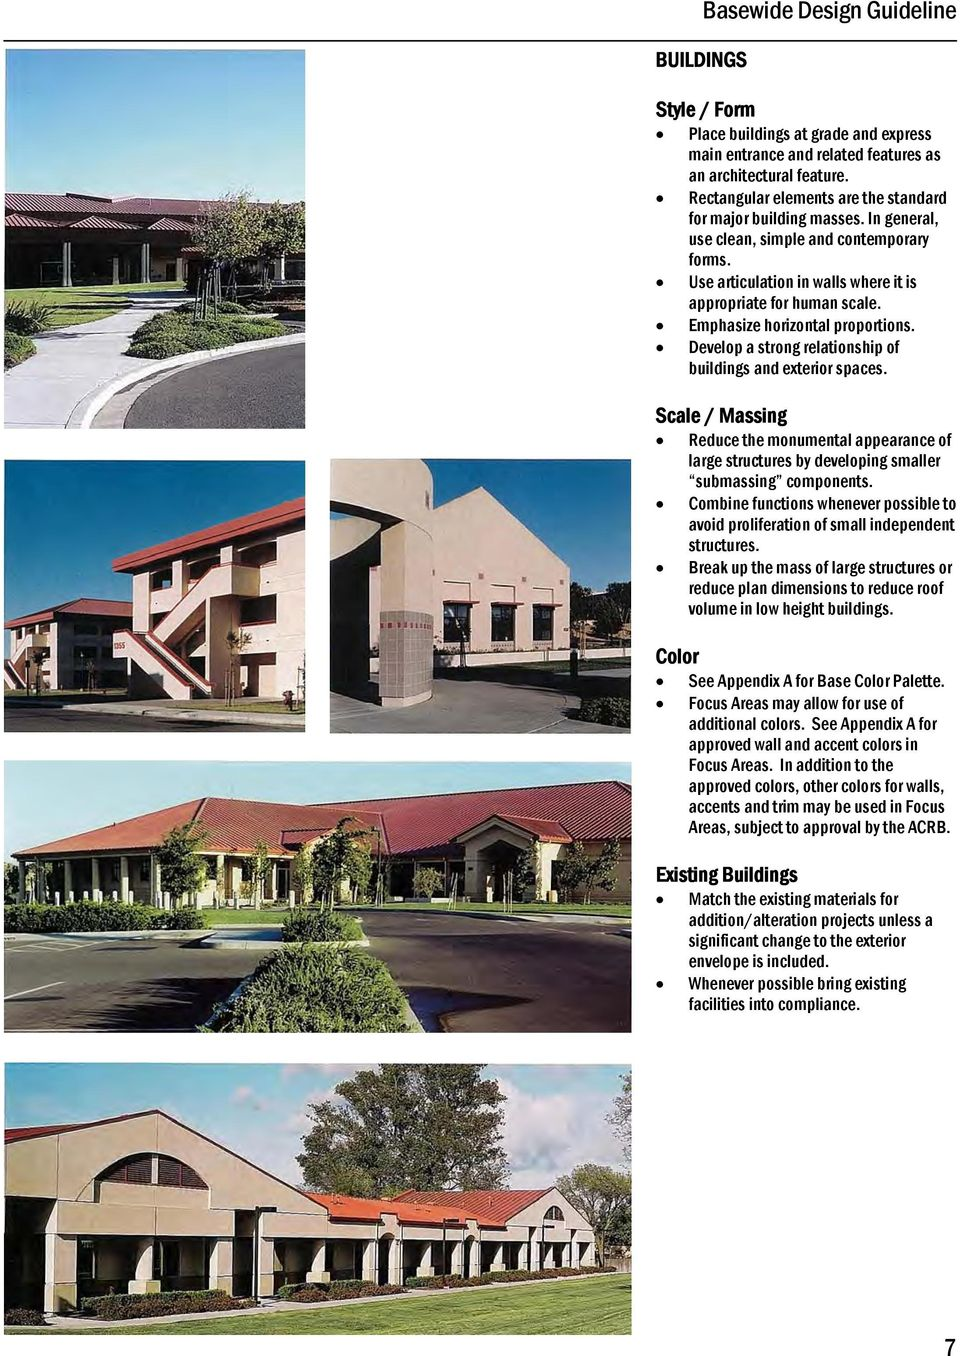 Emphasize horizontal proportions. Develop a strong relationship of buildings and exterior spaces.